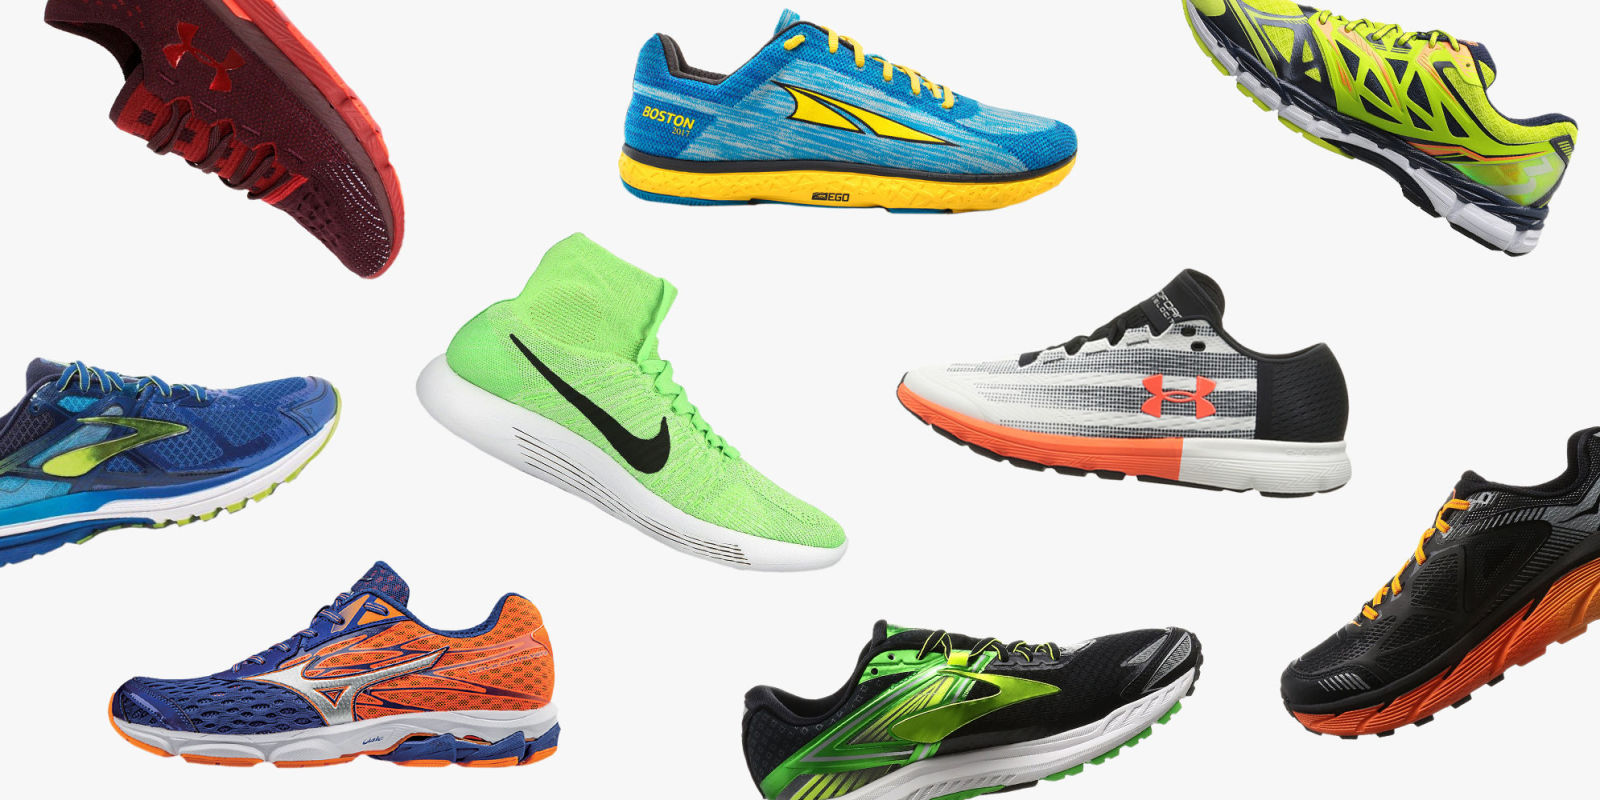 15 best running shoes for in 2017 top running